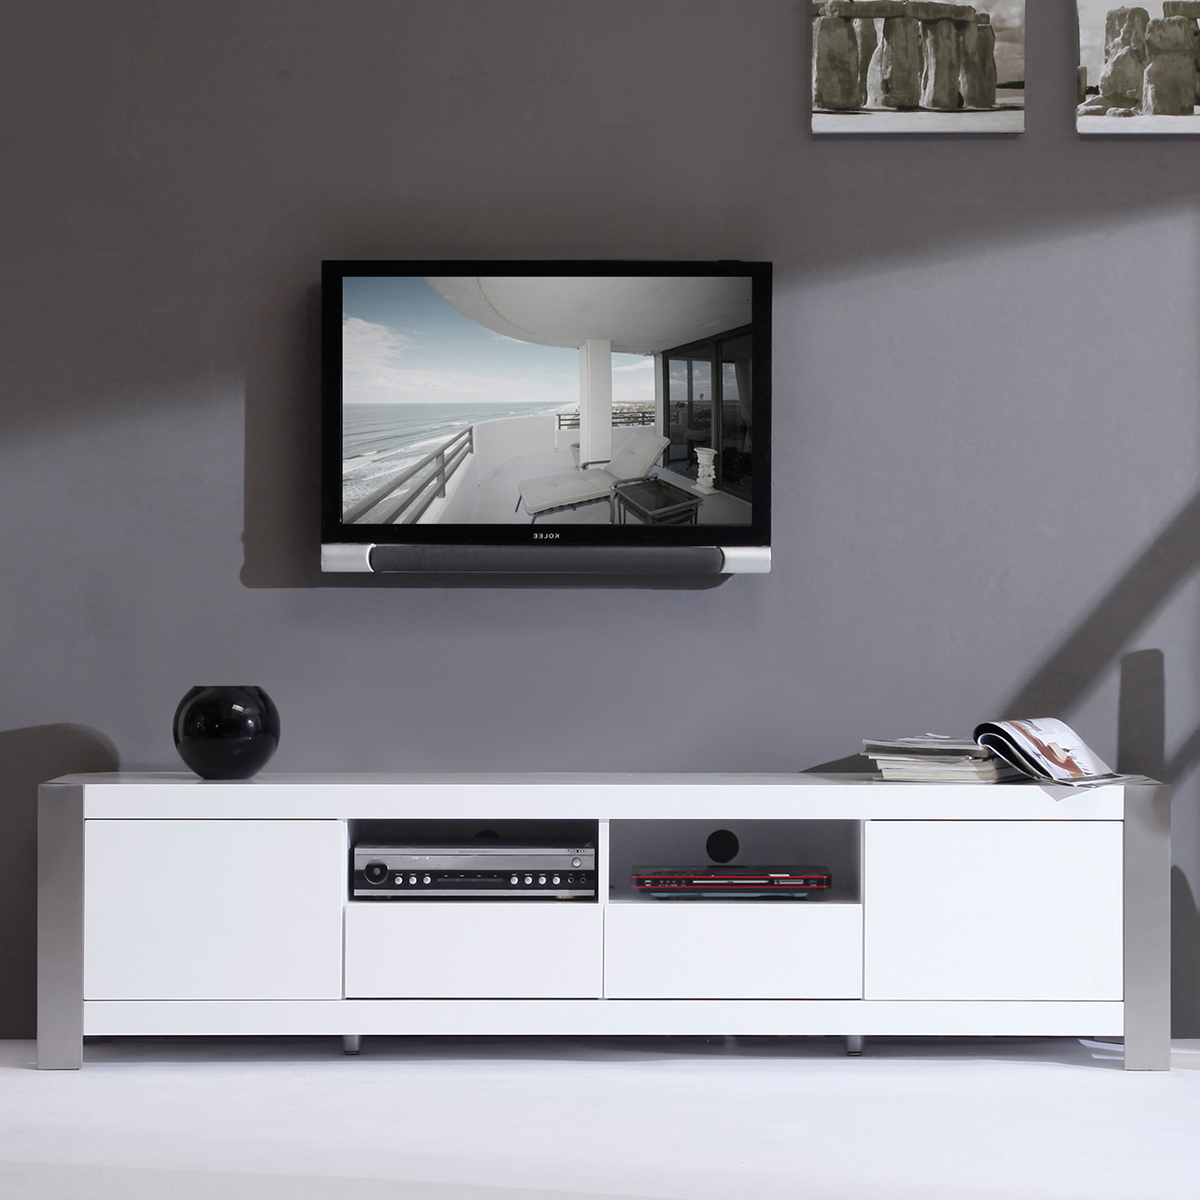 Preferred Clear Tv Stand Small White Ikea Cabinet Designs For Living Room Within Modern White Gloss Tv Stands (Gallery 11 of 20)